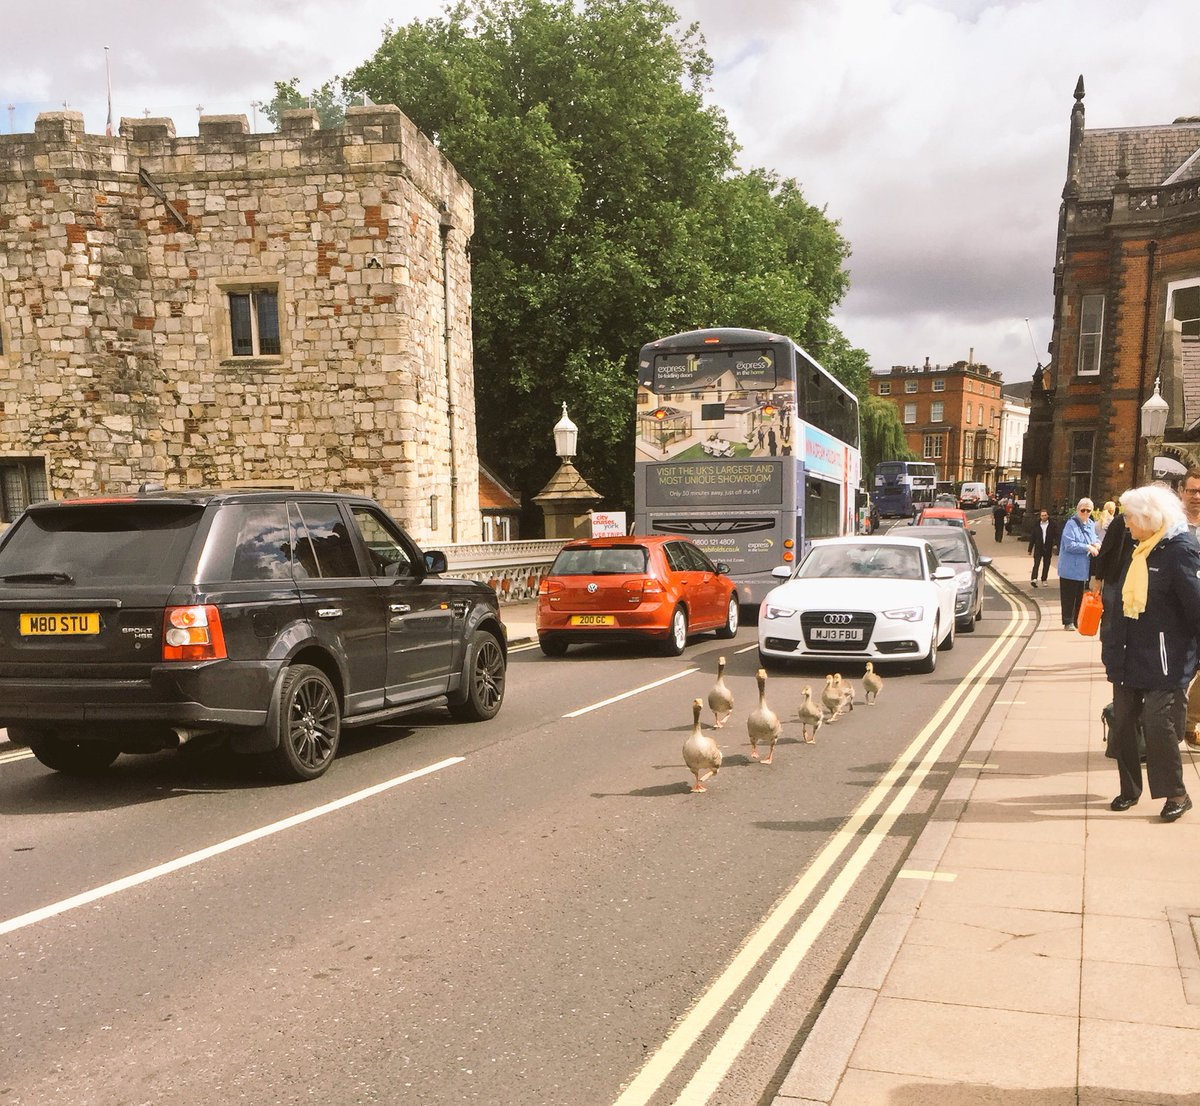 Now that's what I call leadership....these birds absolutely bossing it down the main road through York. https://t.co/kzQ5zs5Tmq